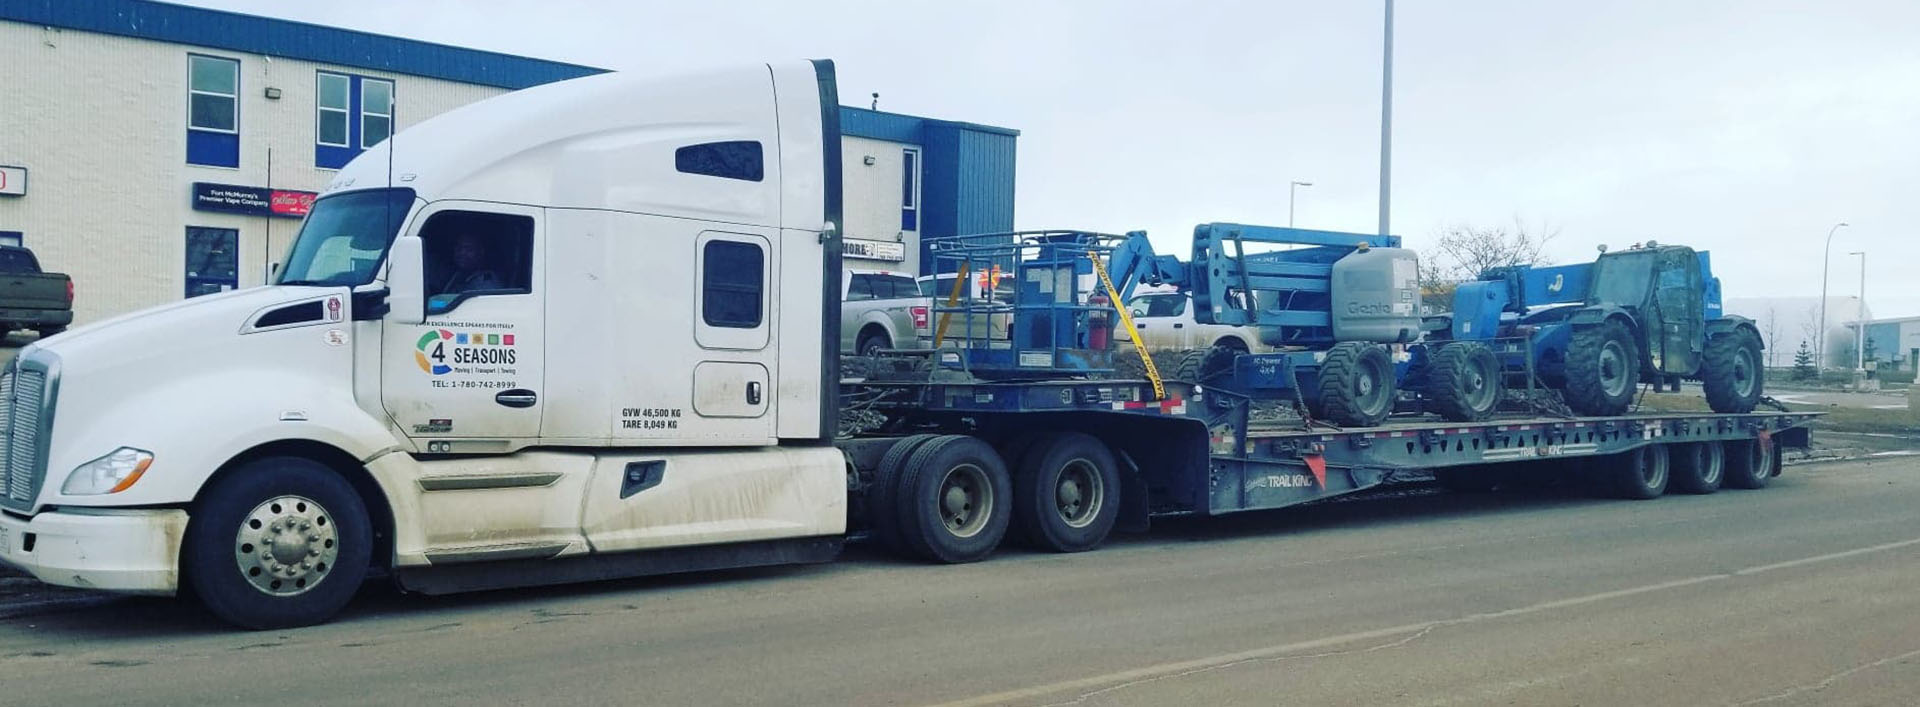 Transport Equipments Alberta - 4 Seasons Transport & Towing